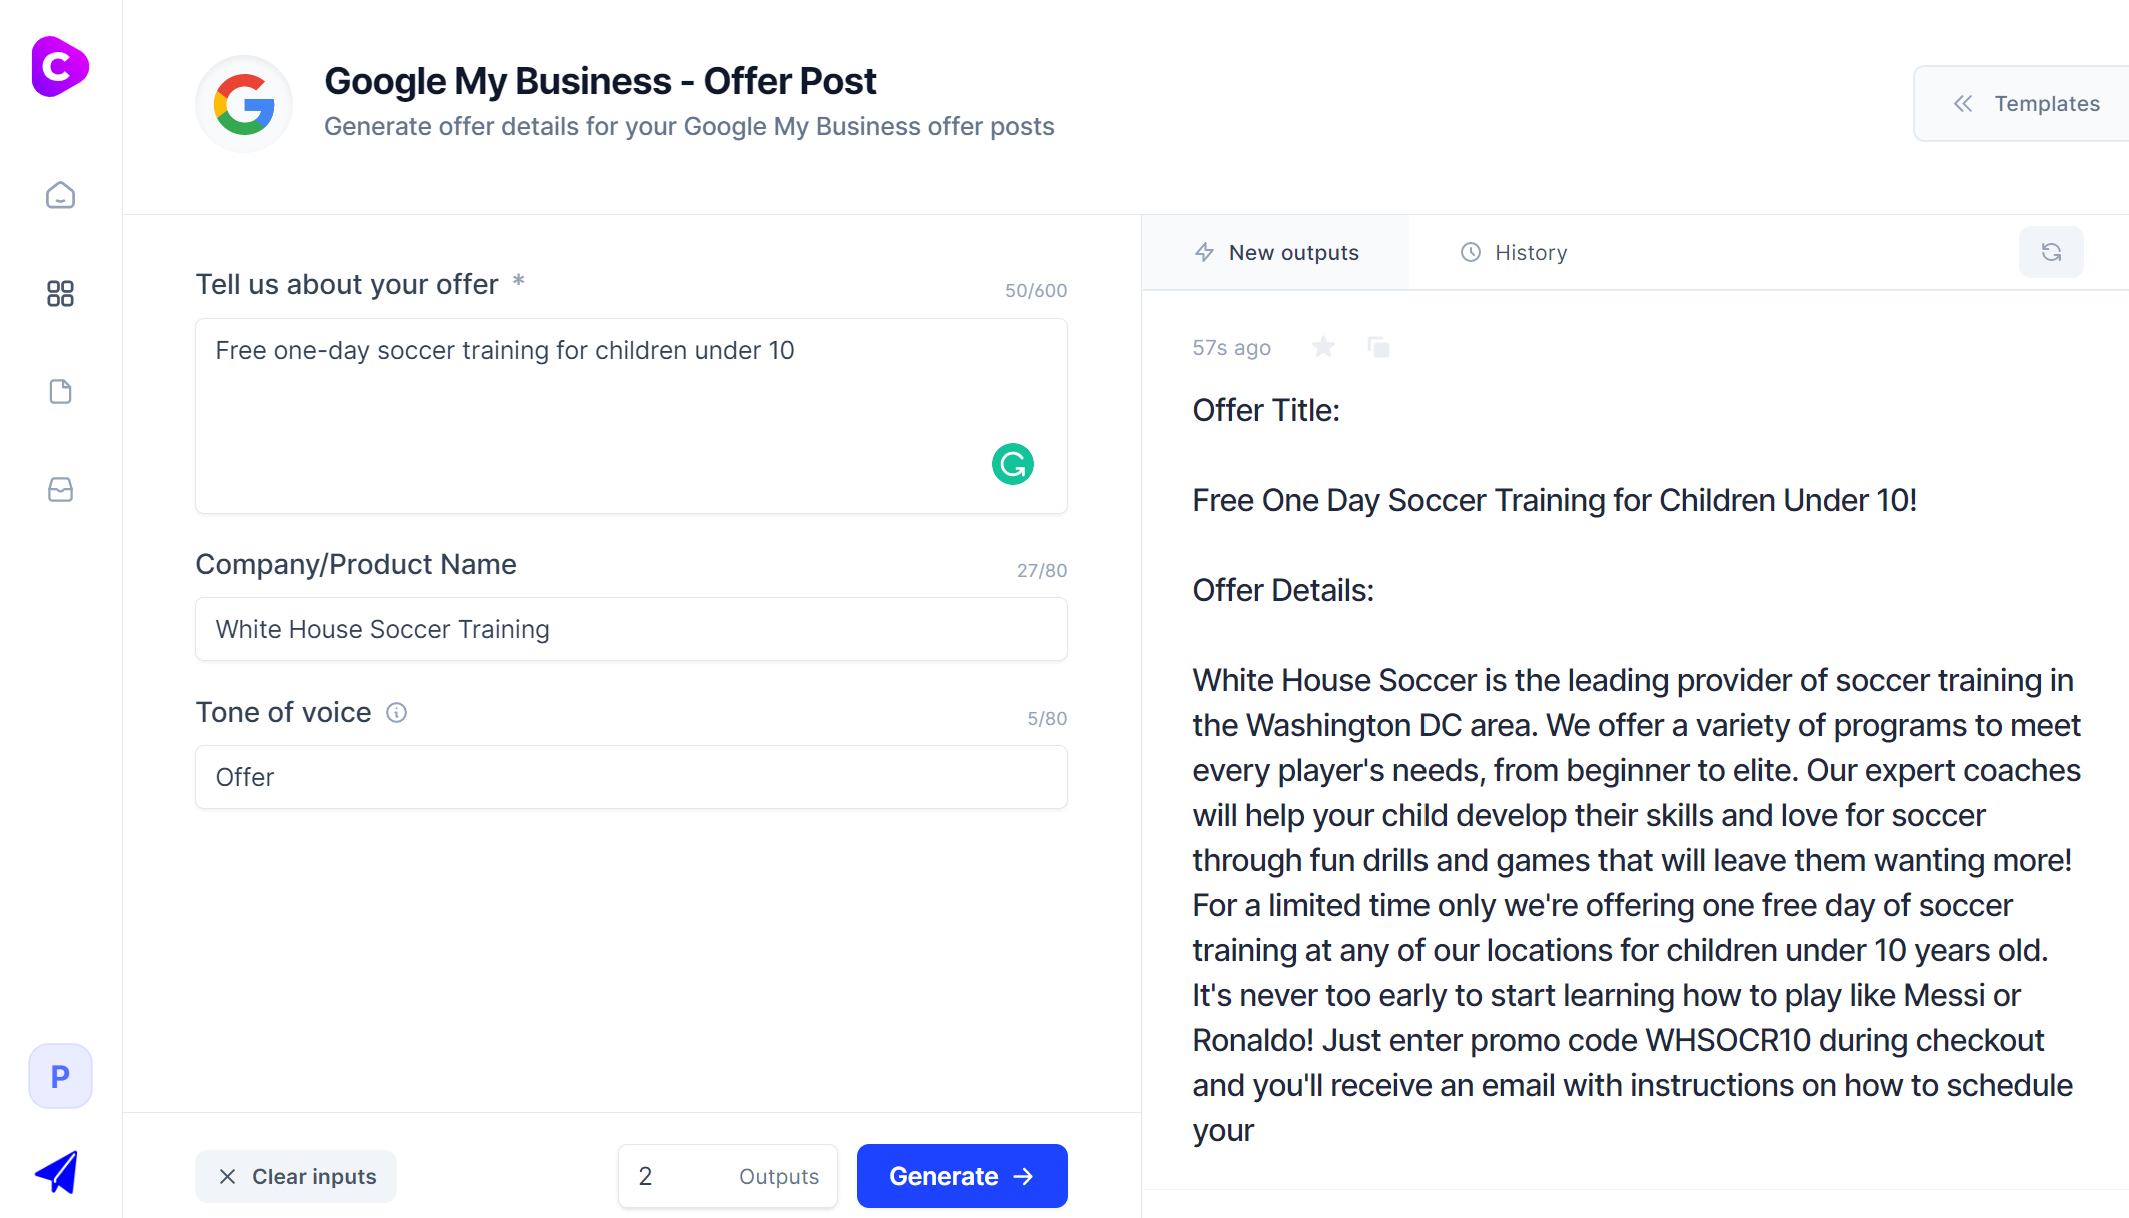 Jarvis.ai - Google My Business Offer Post Template